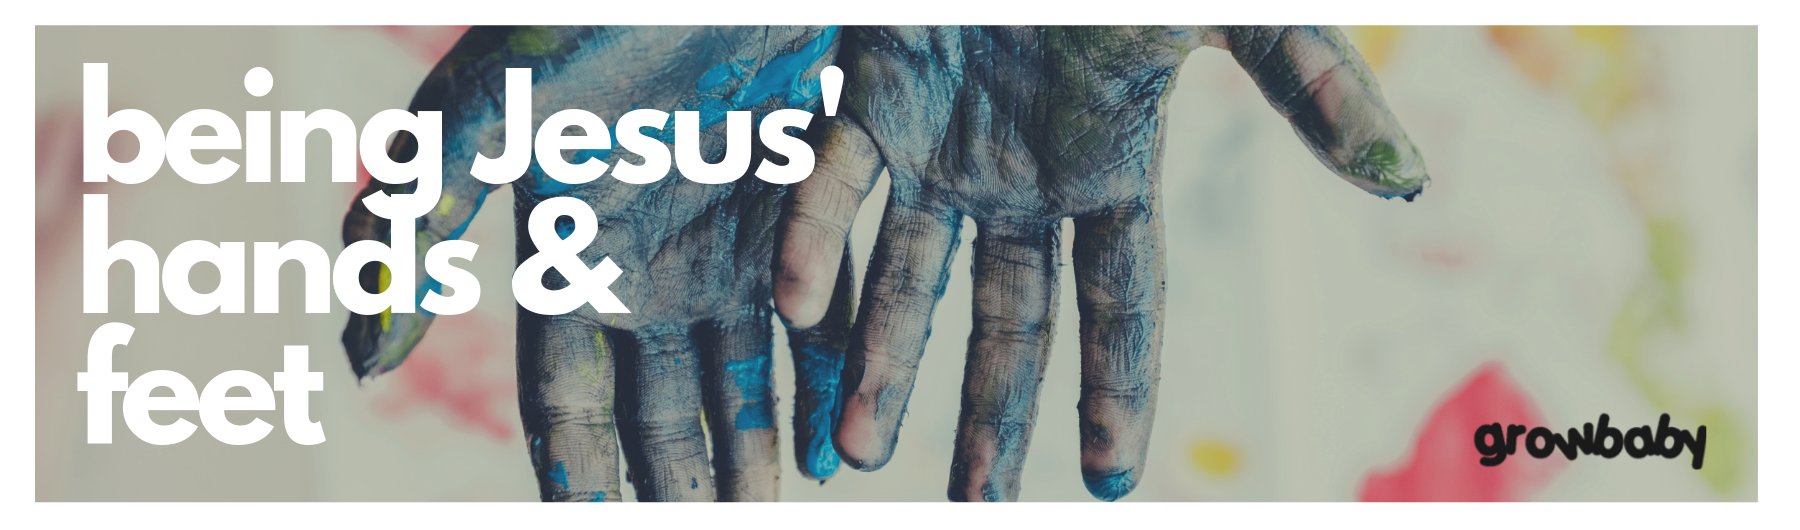 Being Jesus' Hands & Feet (Growbaby) Conference 2019